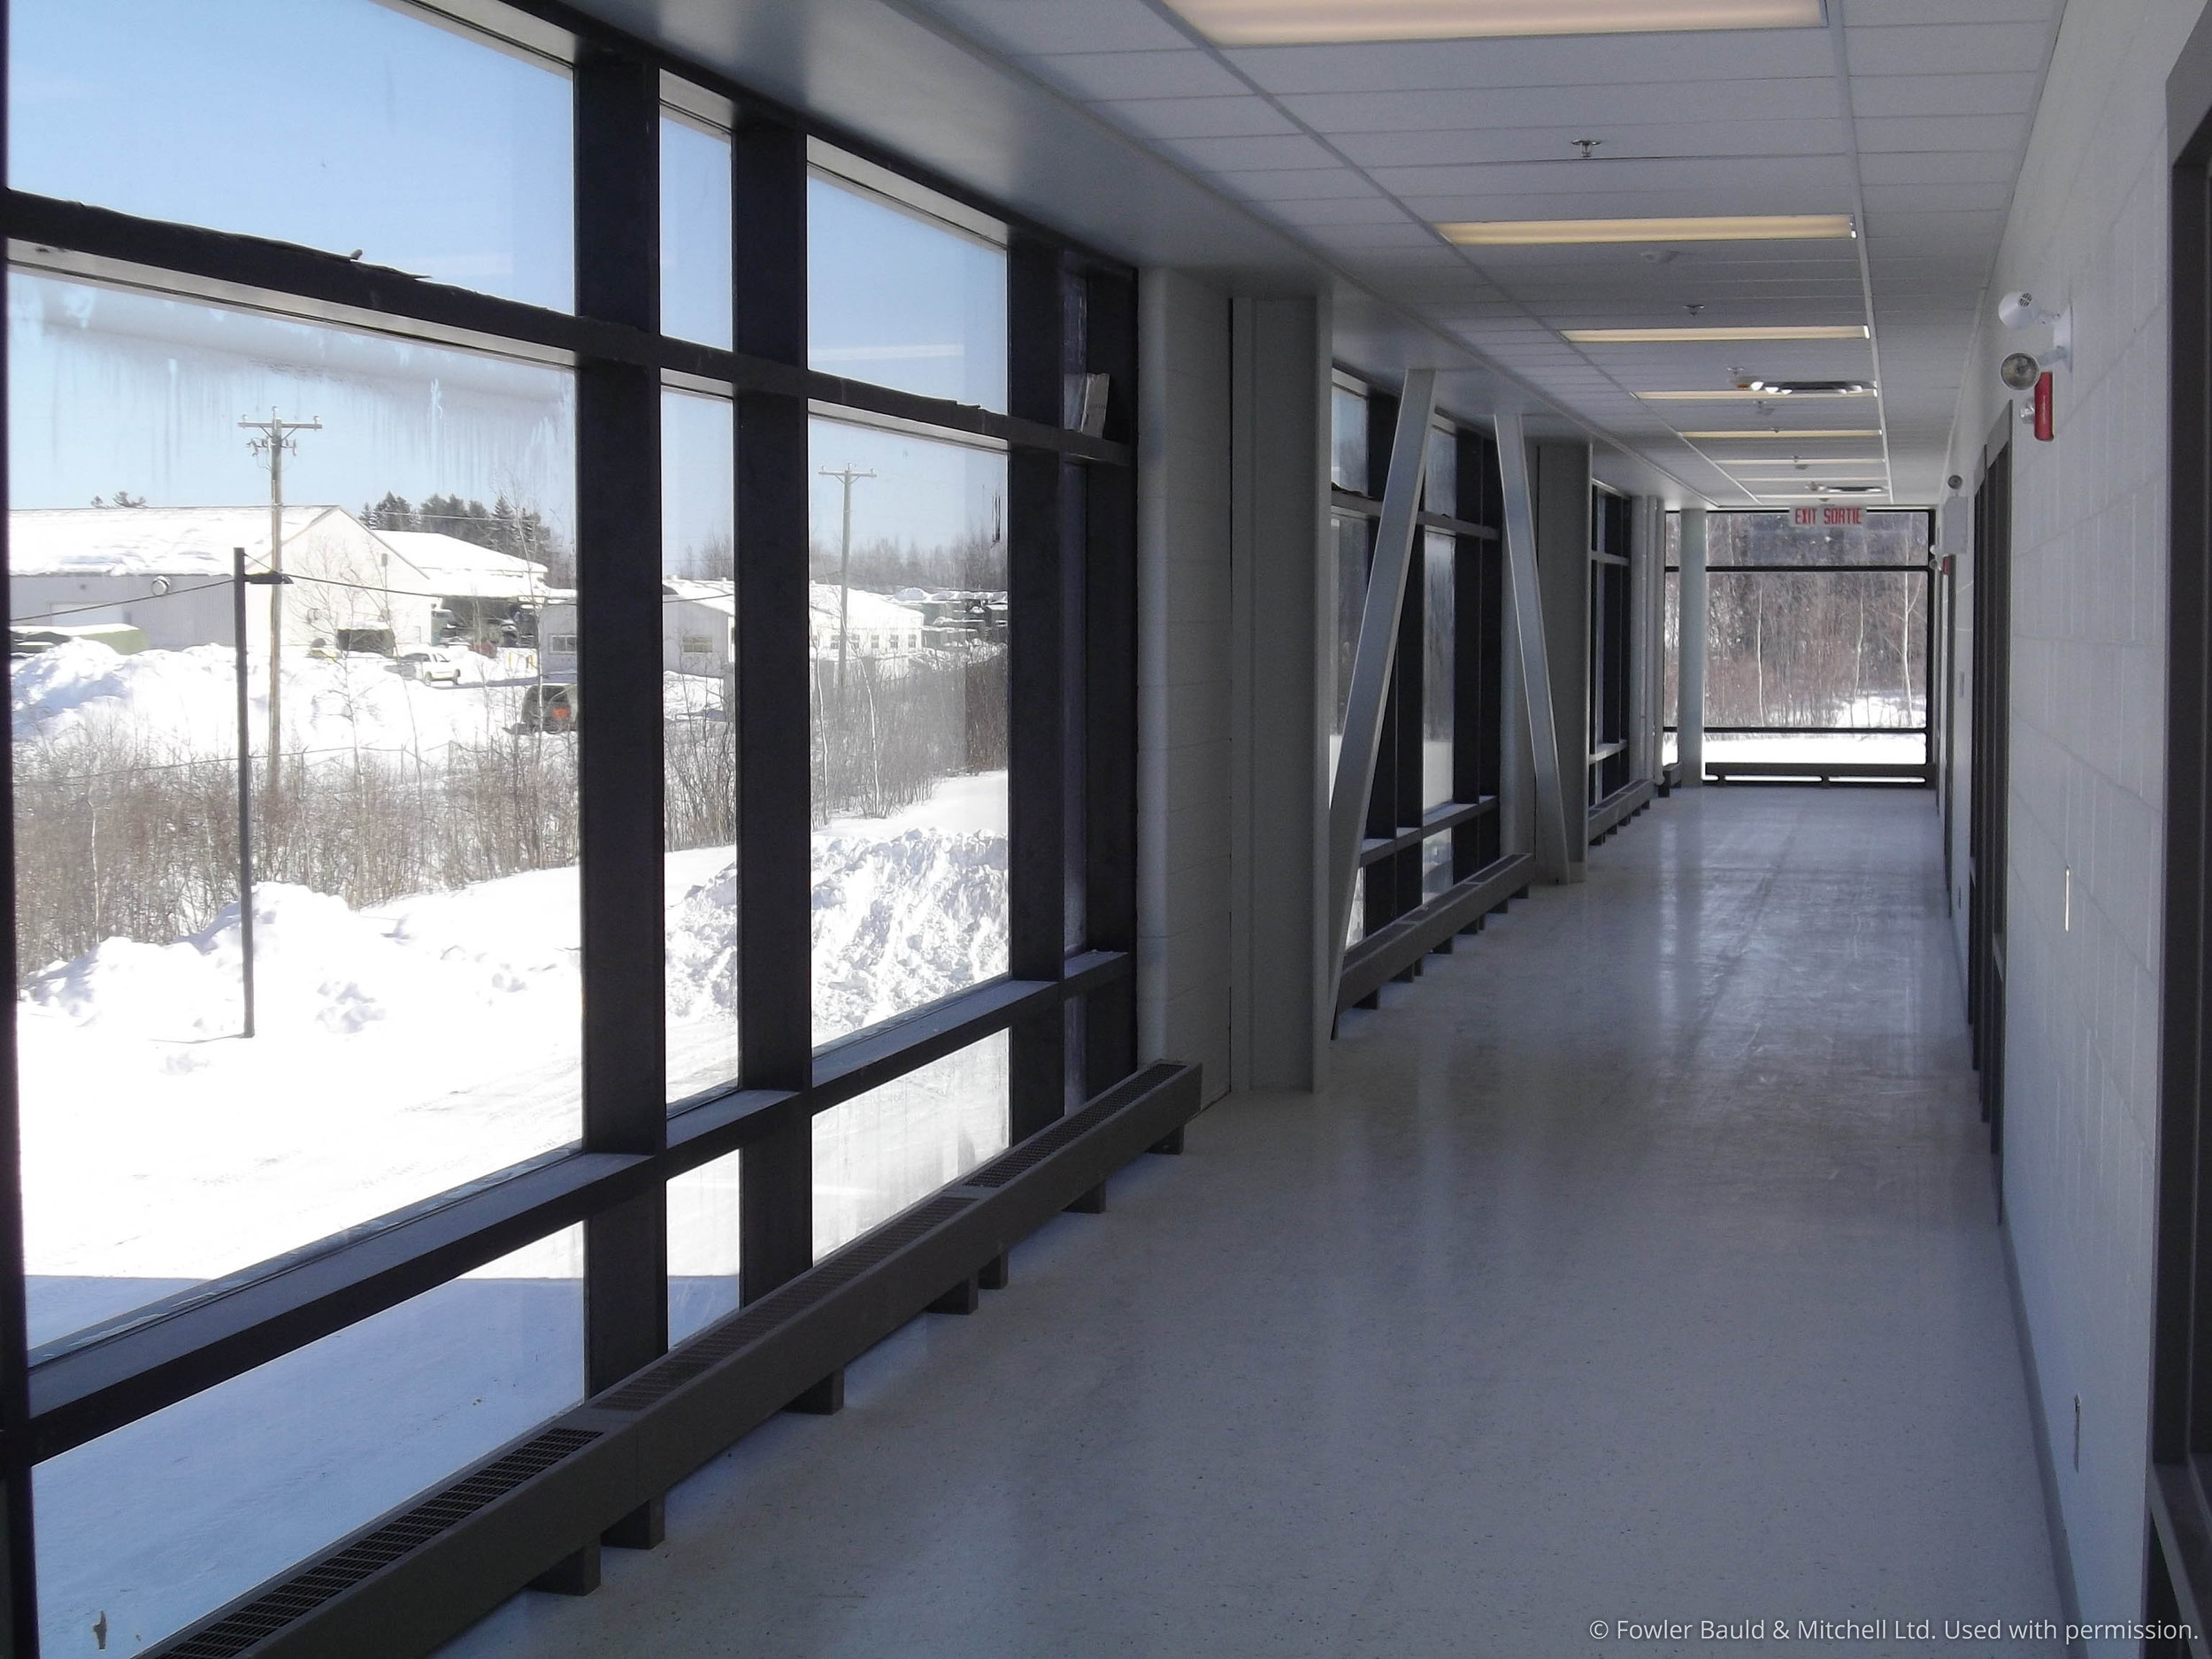 Generous daylight is provided to the corridors serving the classrooms.